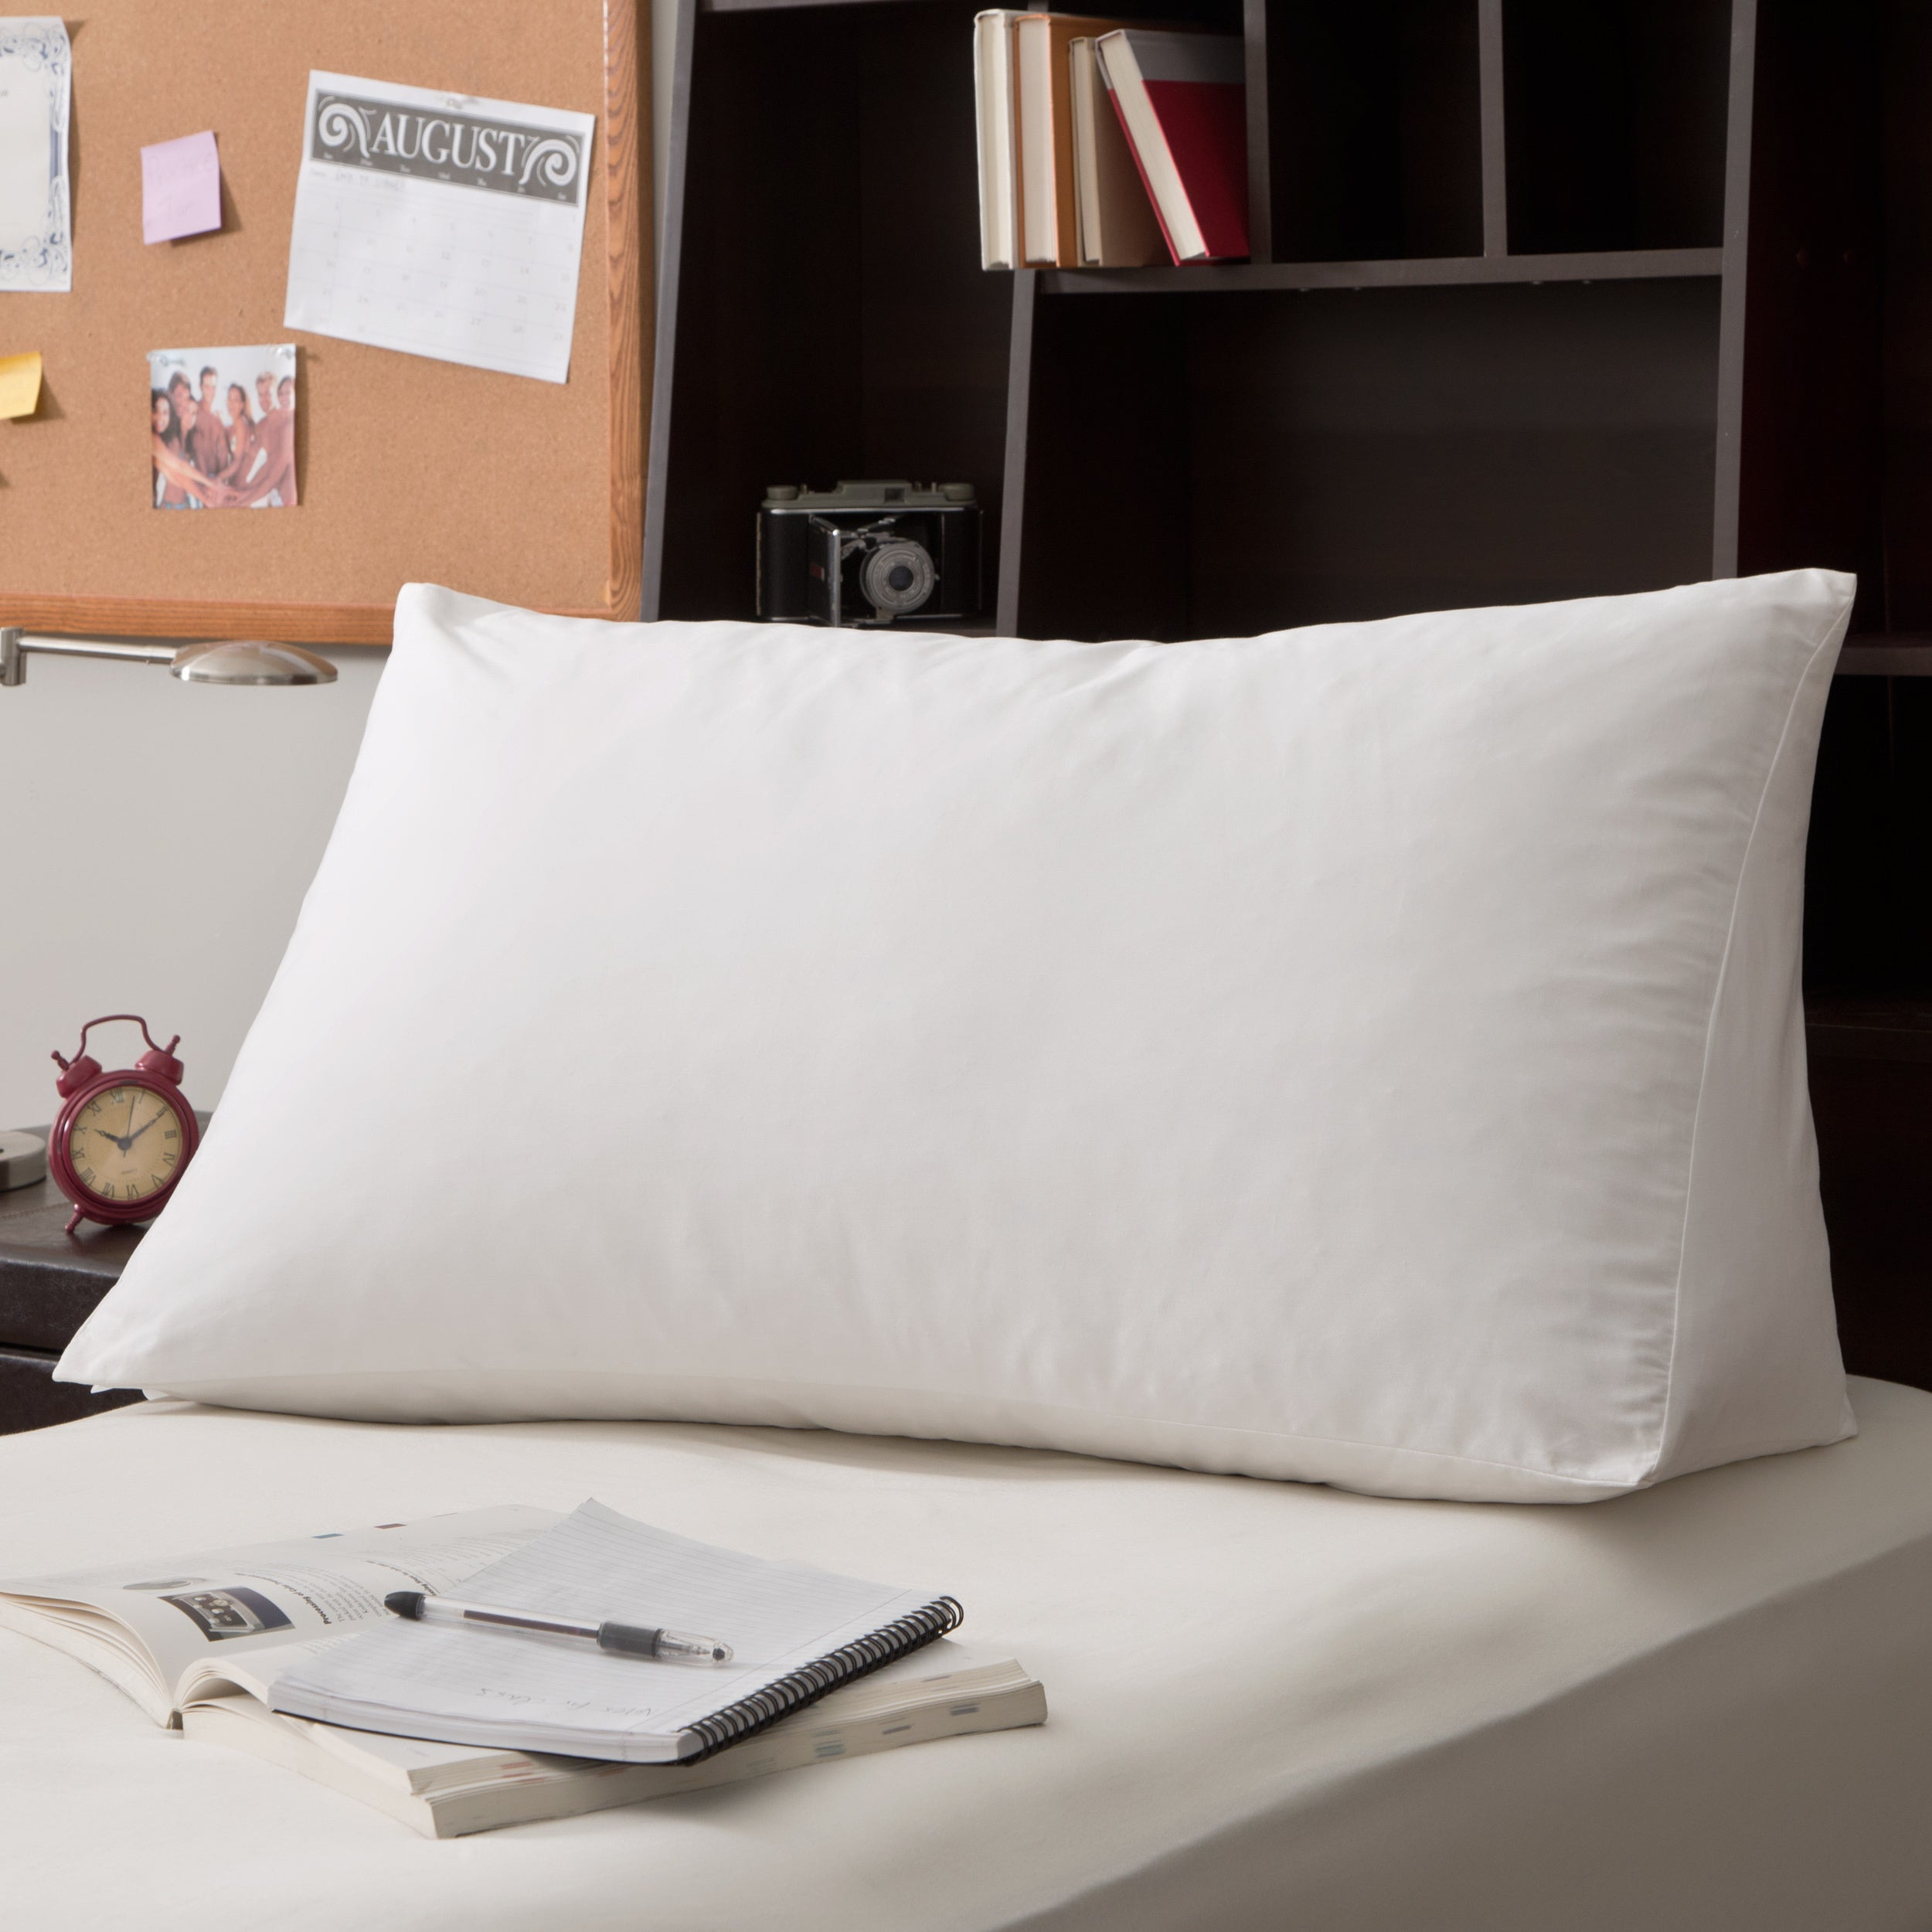 foam topper wedge cover relax cool memory with and home spo bed pillow x removable stay life products t bamboo